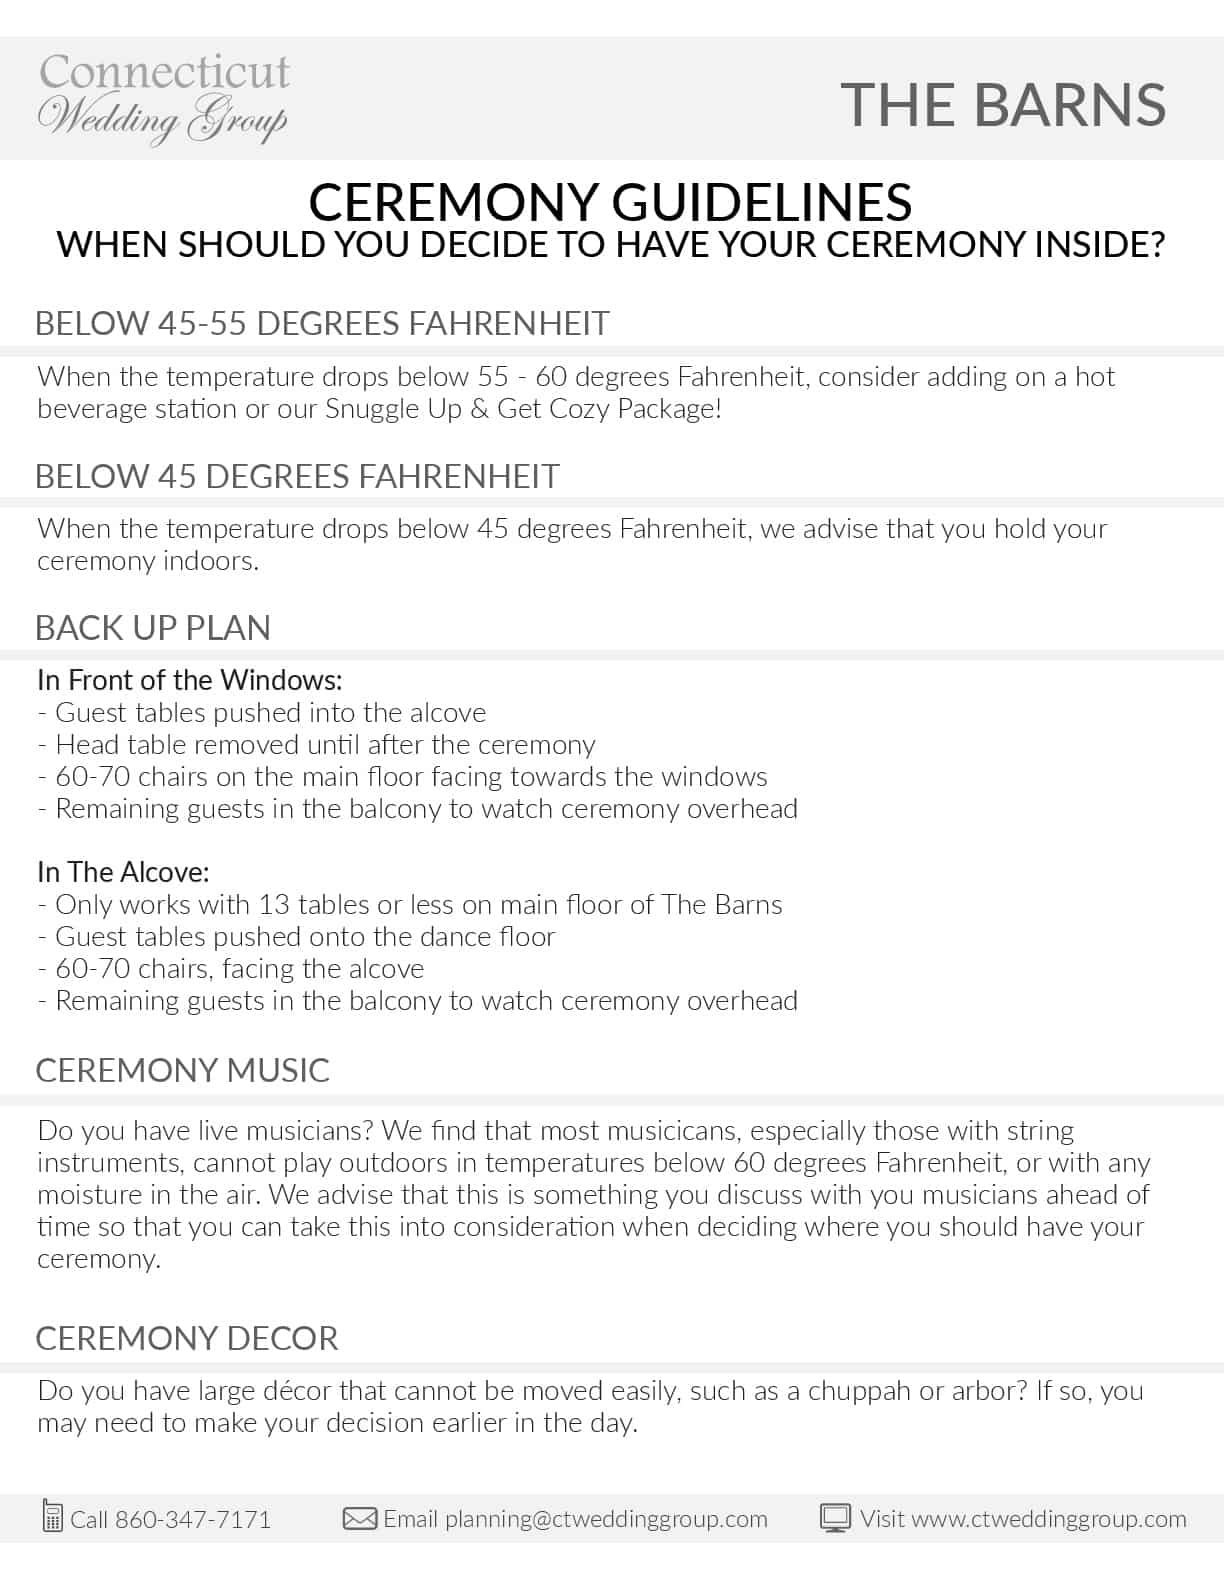 117_15178_Ceremony-Guidelines_-The-Barns-001